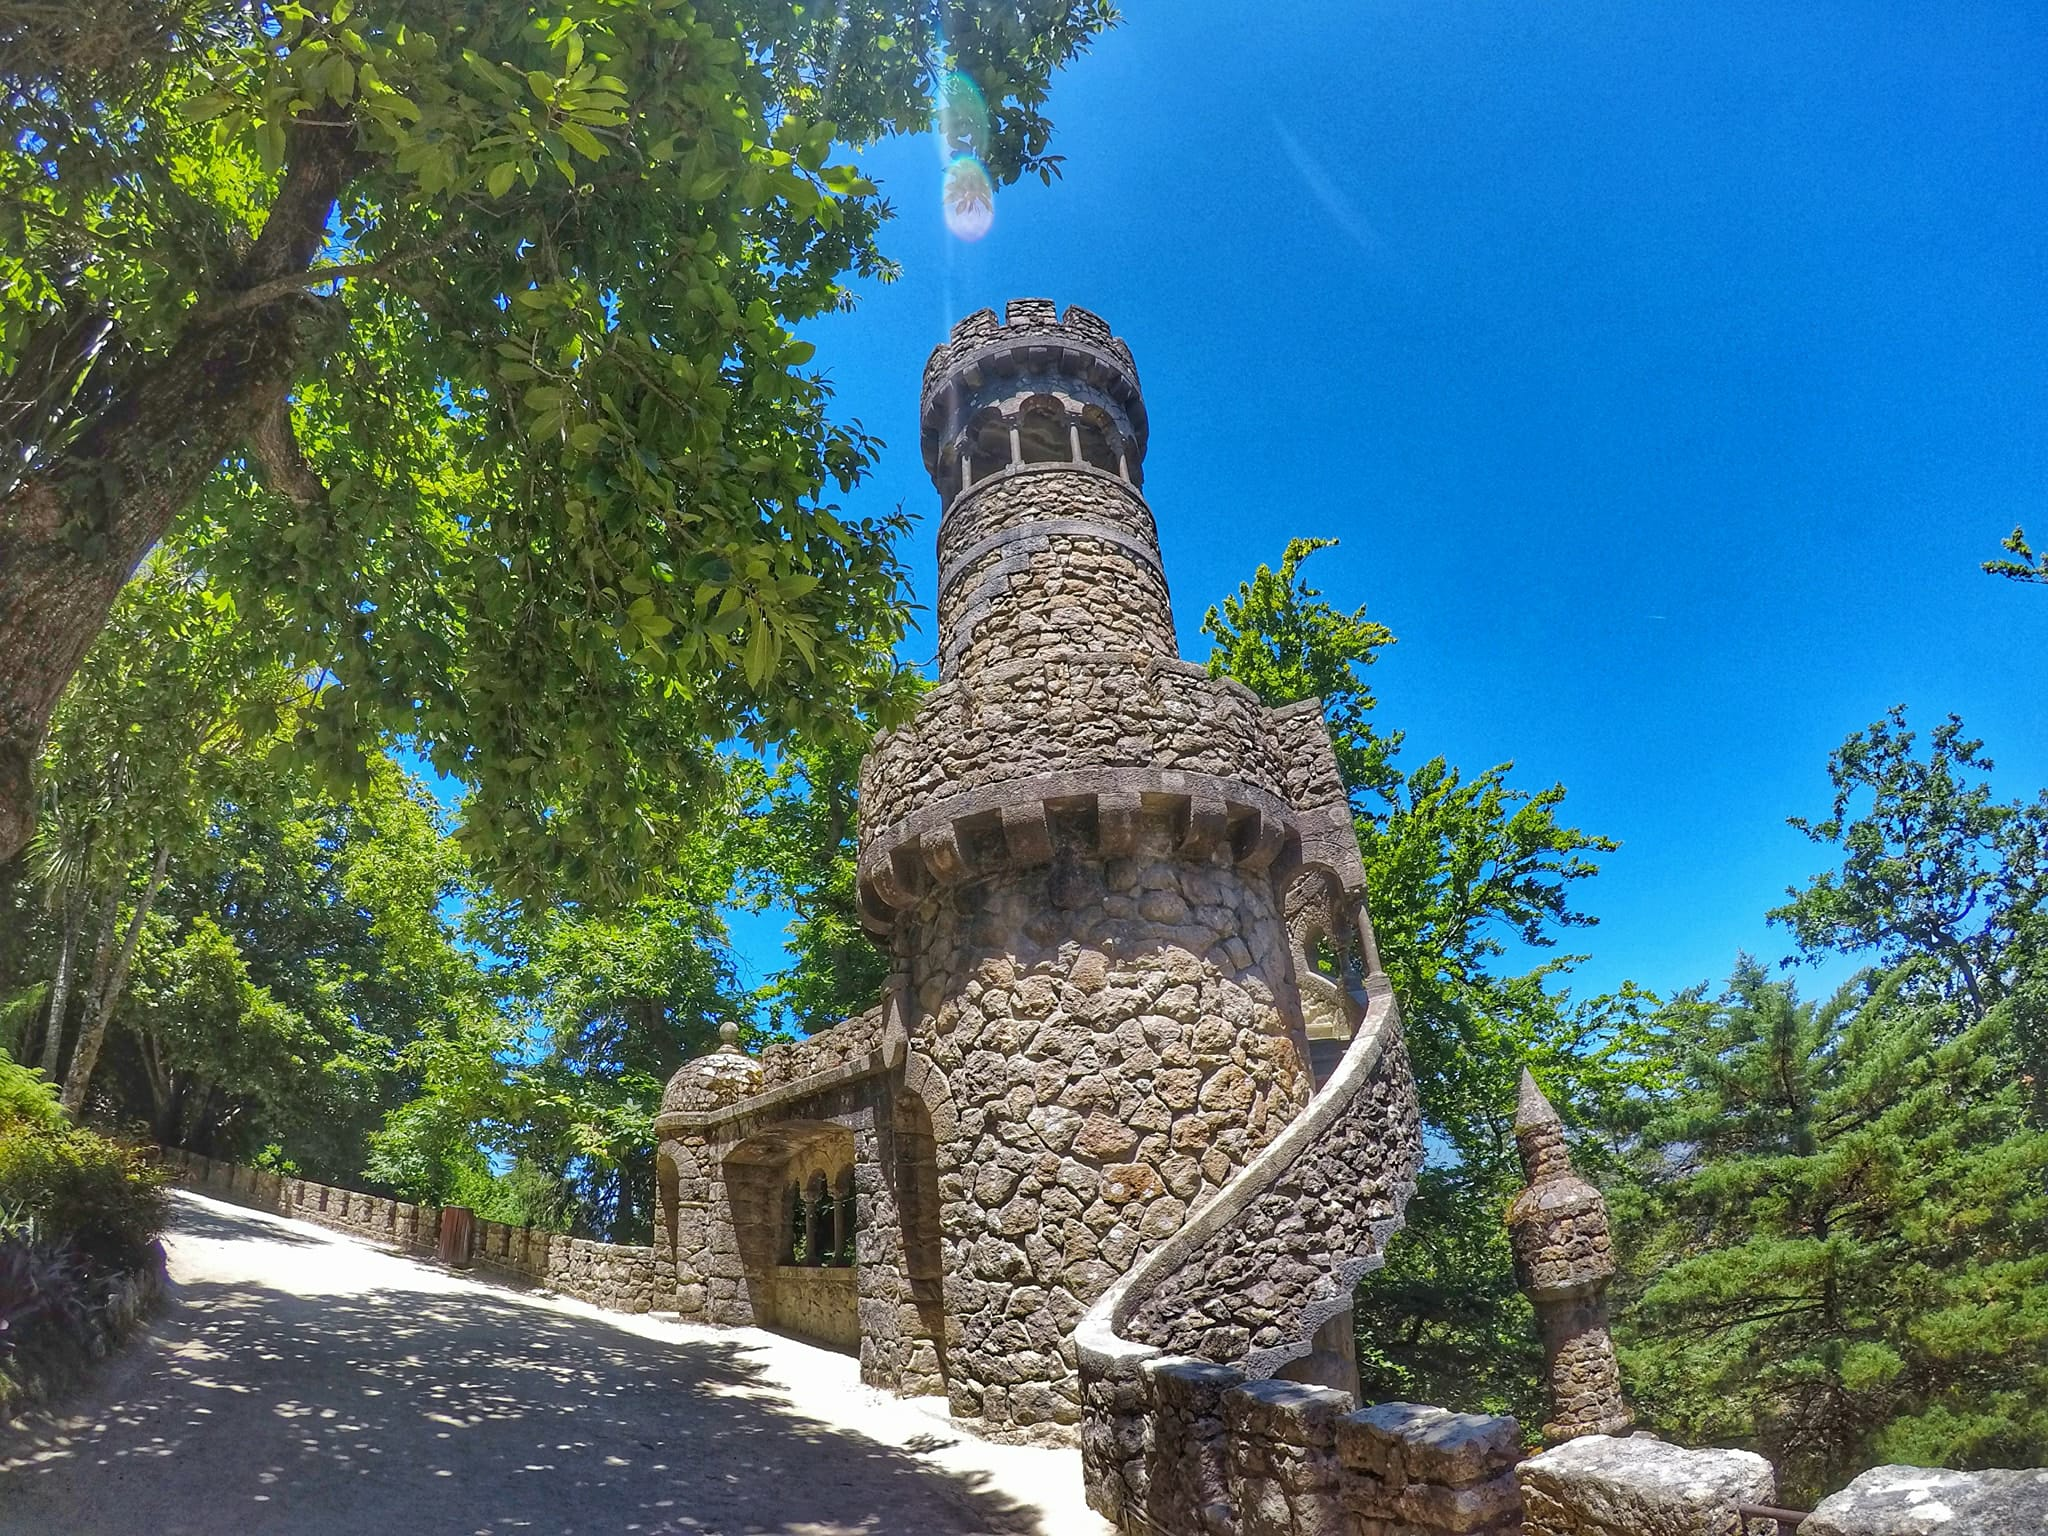 Dday trip from Lisbon - Quinta da Regaleira tower in Sintra